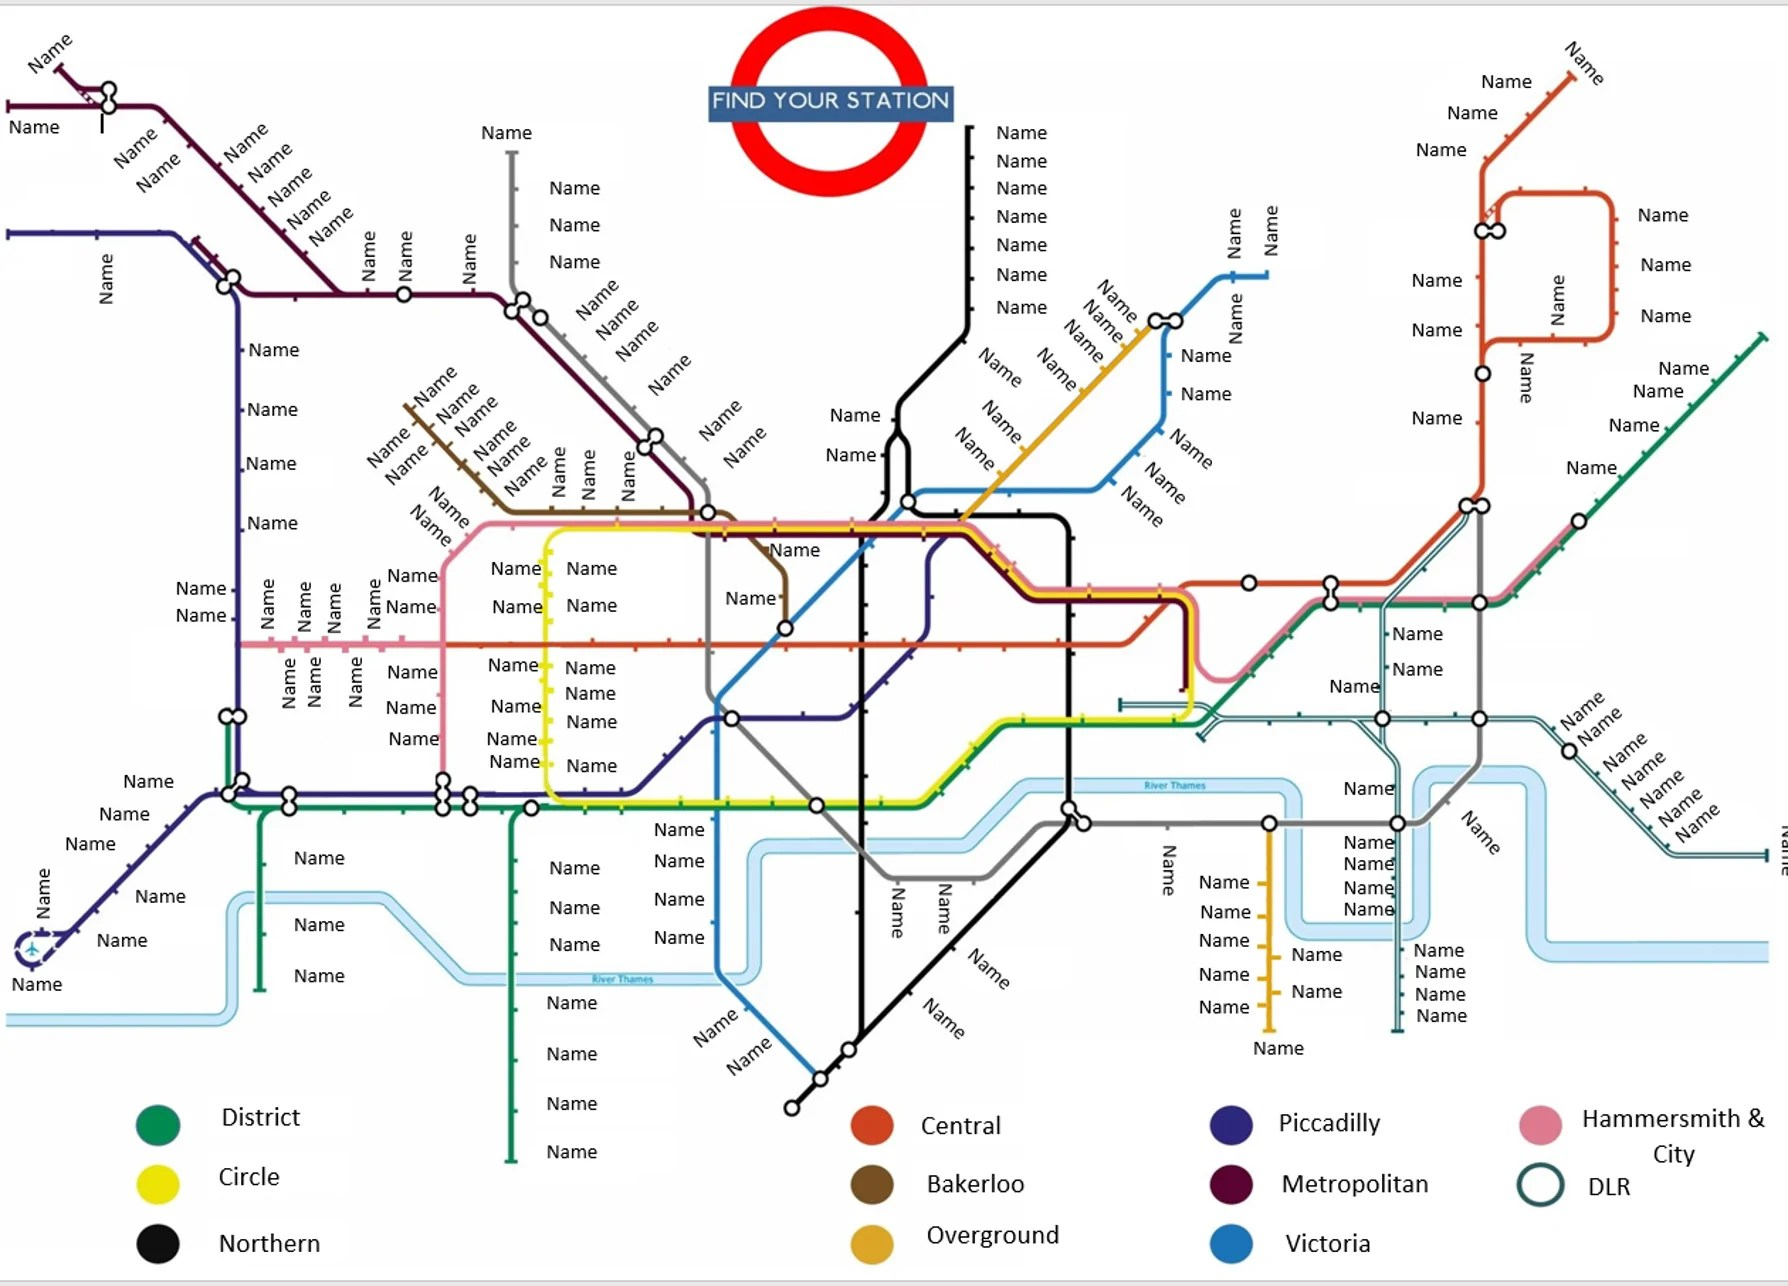 london tube map table seating plan with stations for weddings birthdays parties the party postman [ 1788 x 1286 Pixel ]